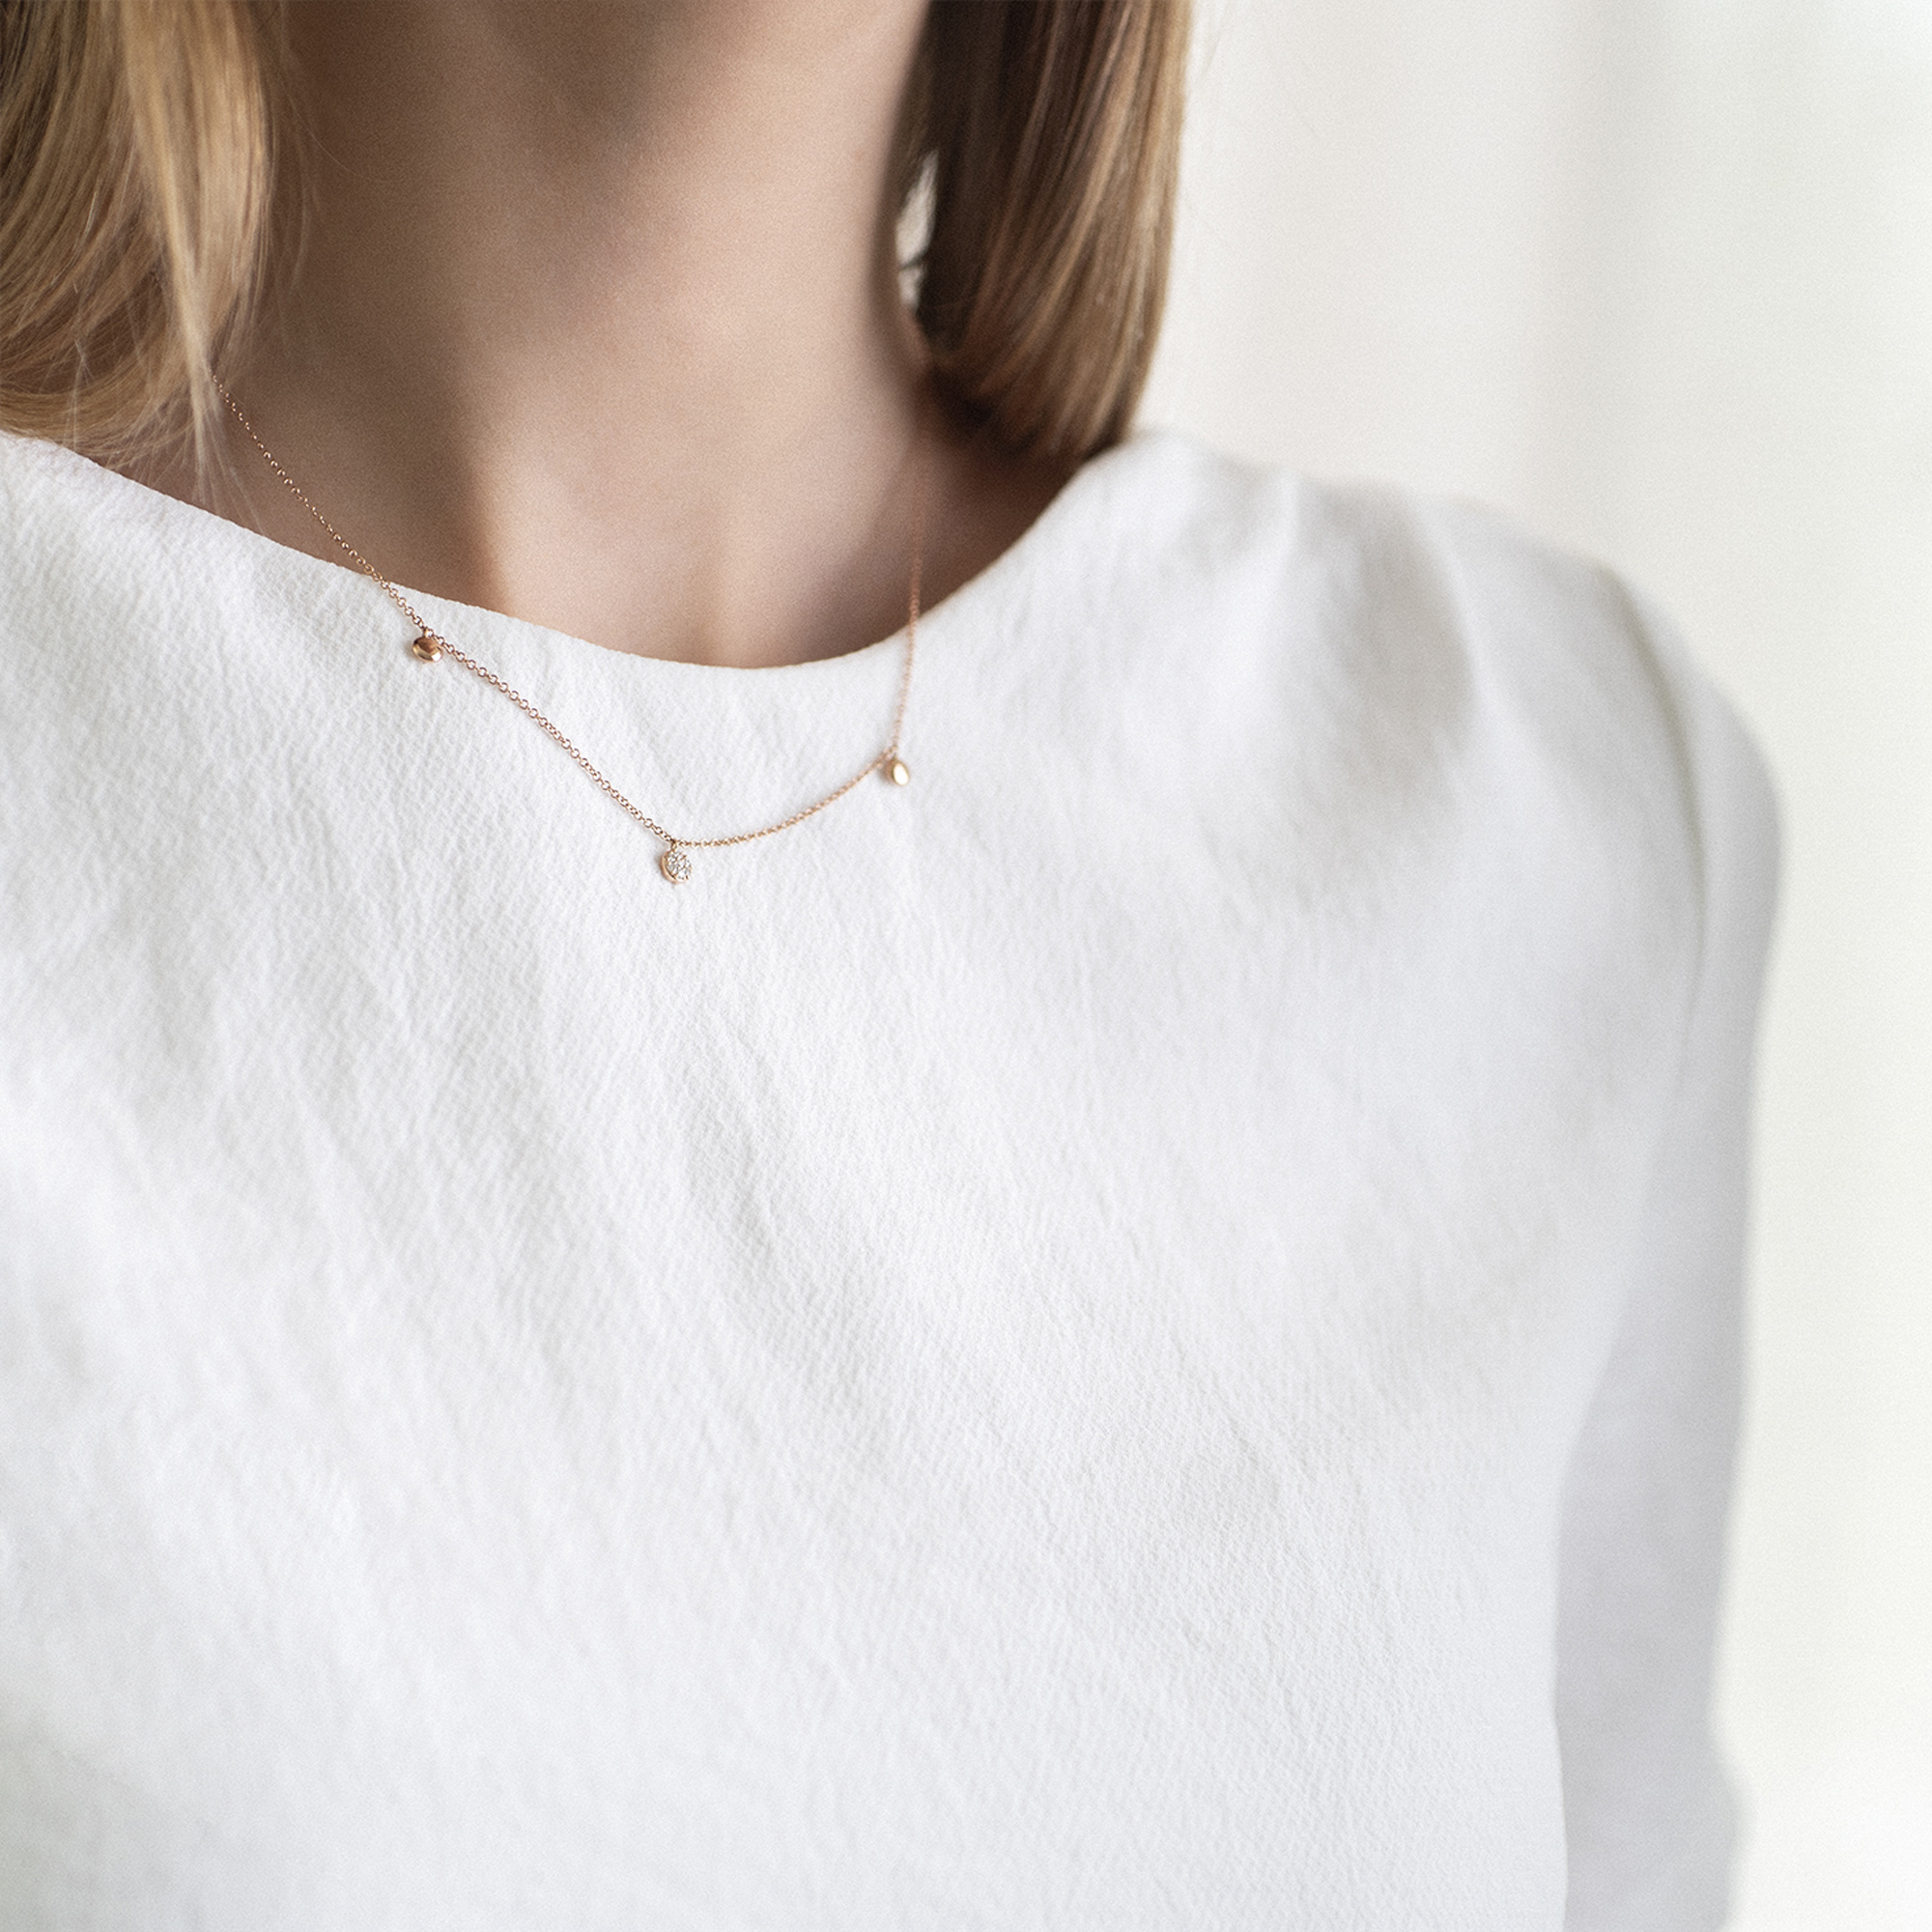 eolo necklace in rose gold